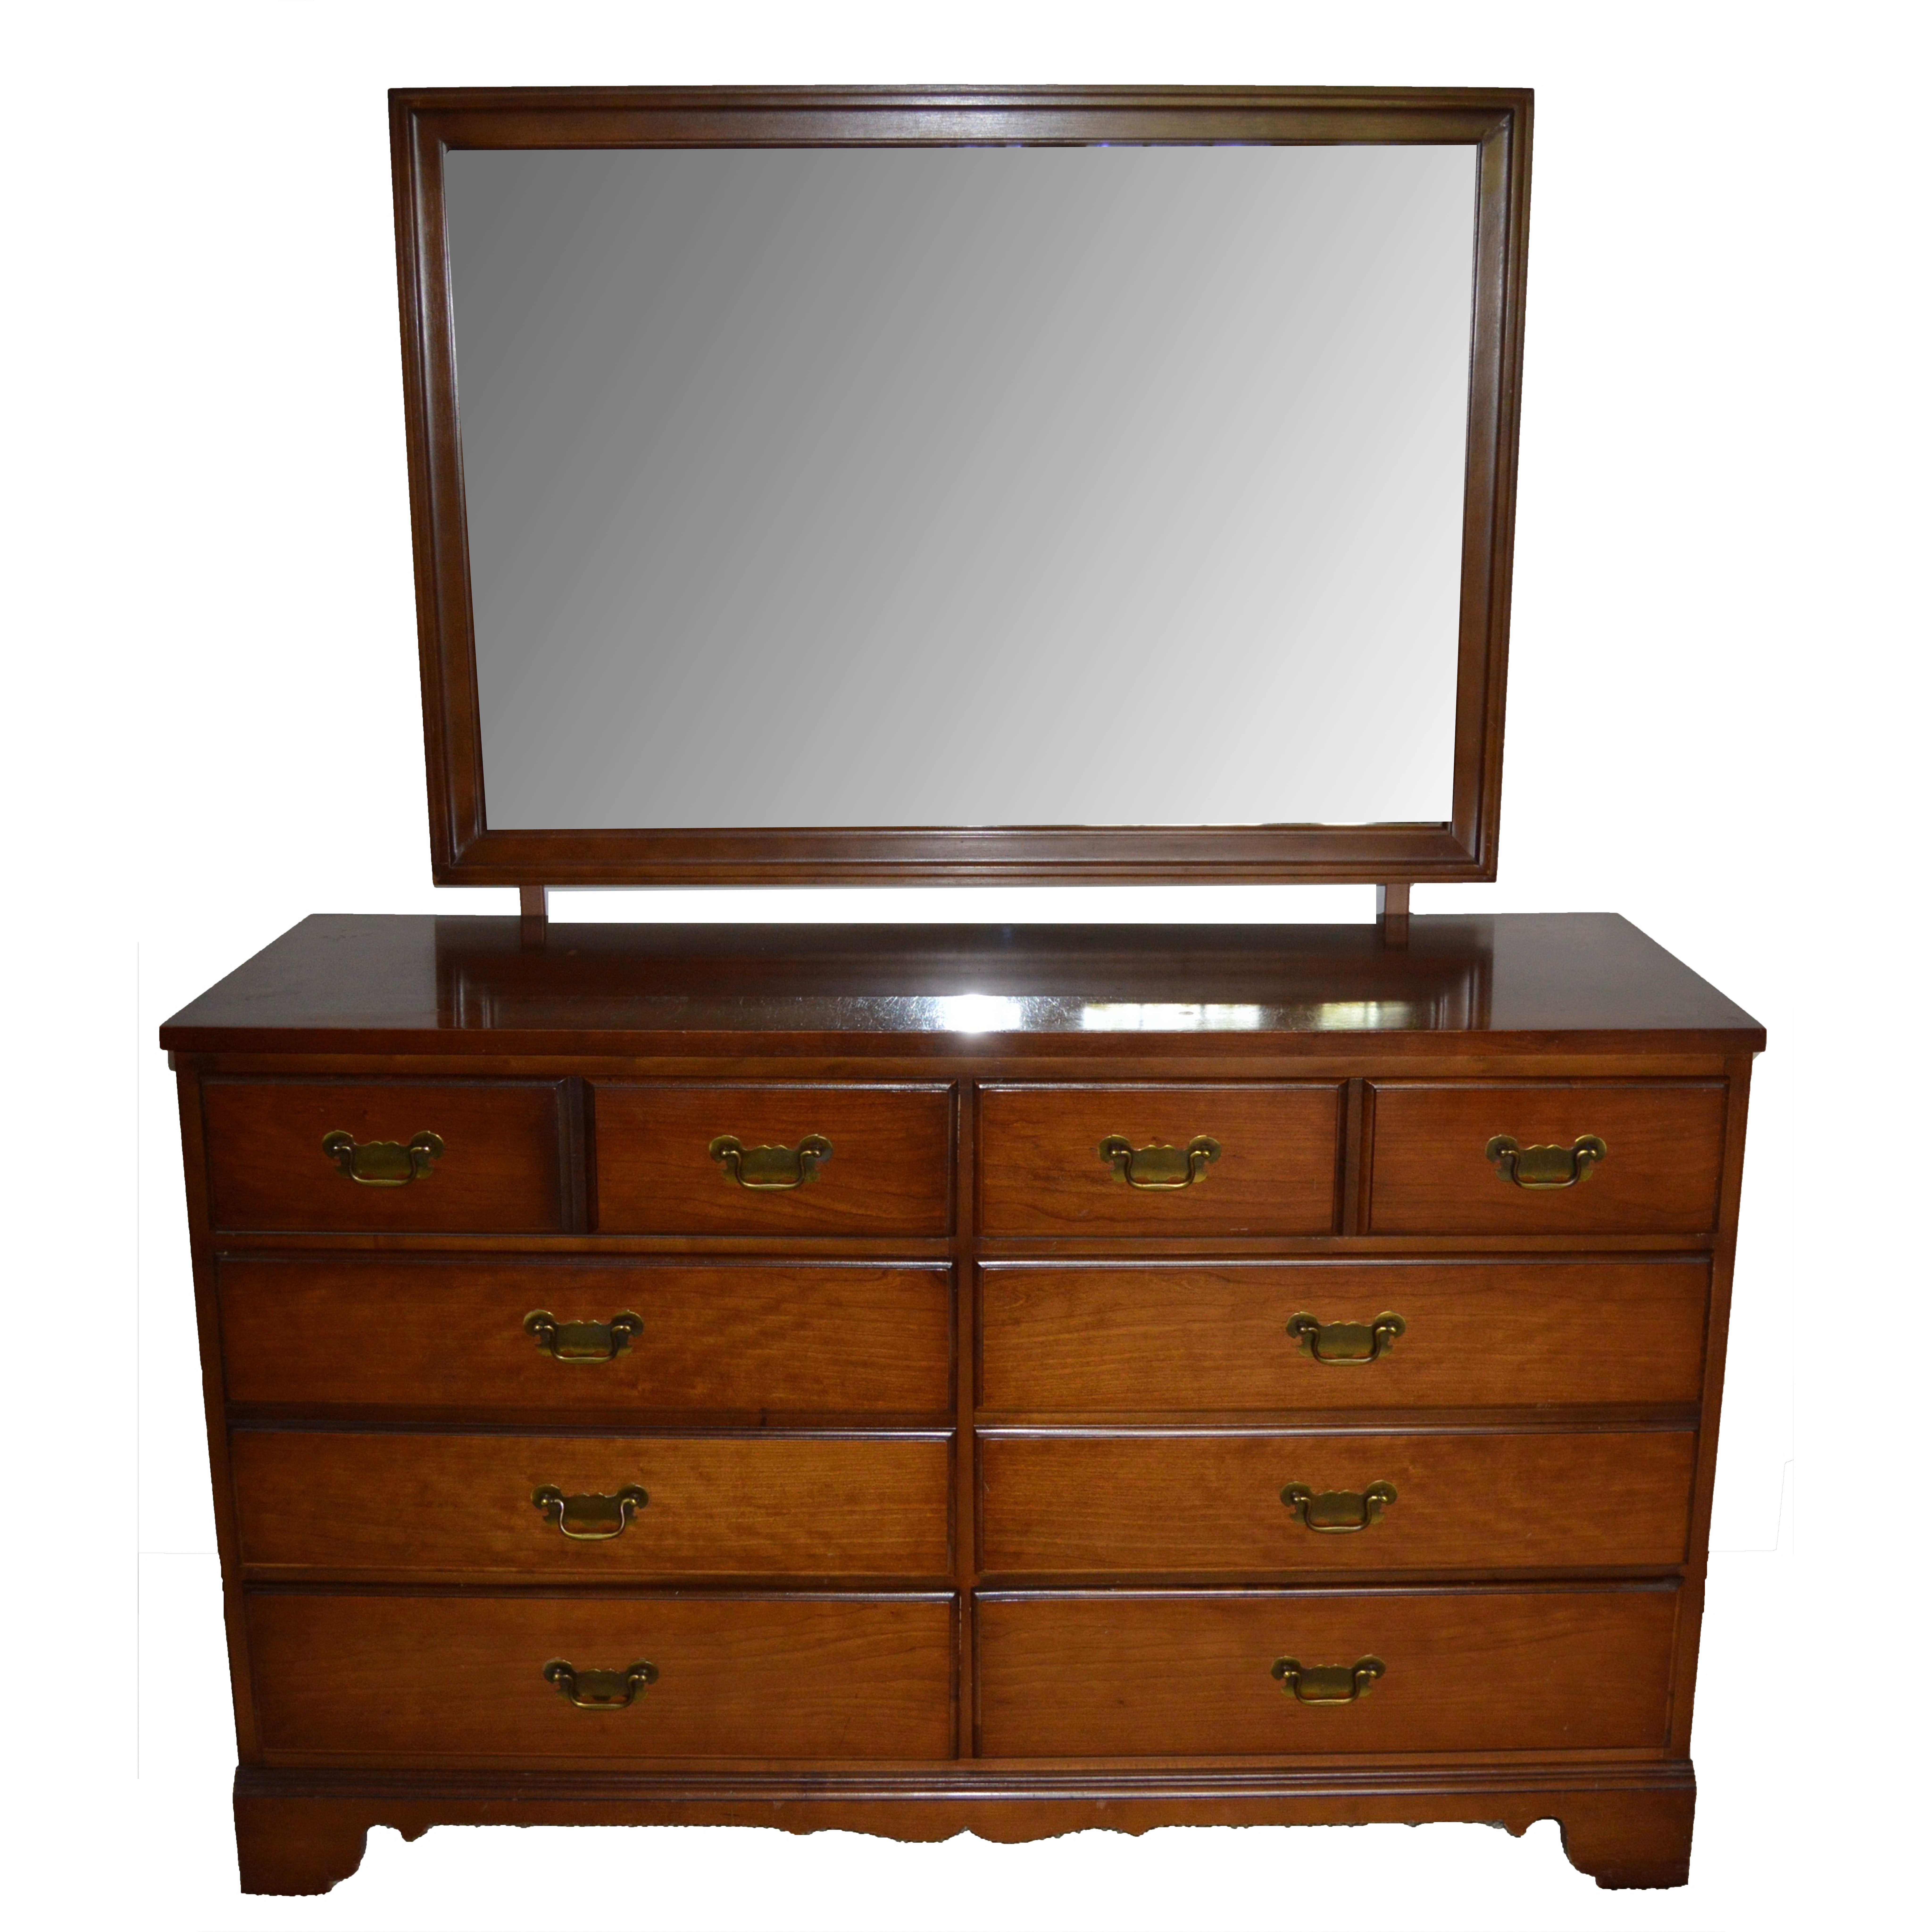 Bedroom Dresser With Mirror By Dixie Furniture ...